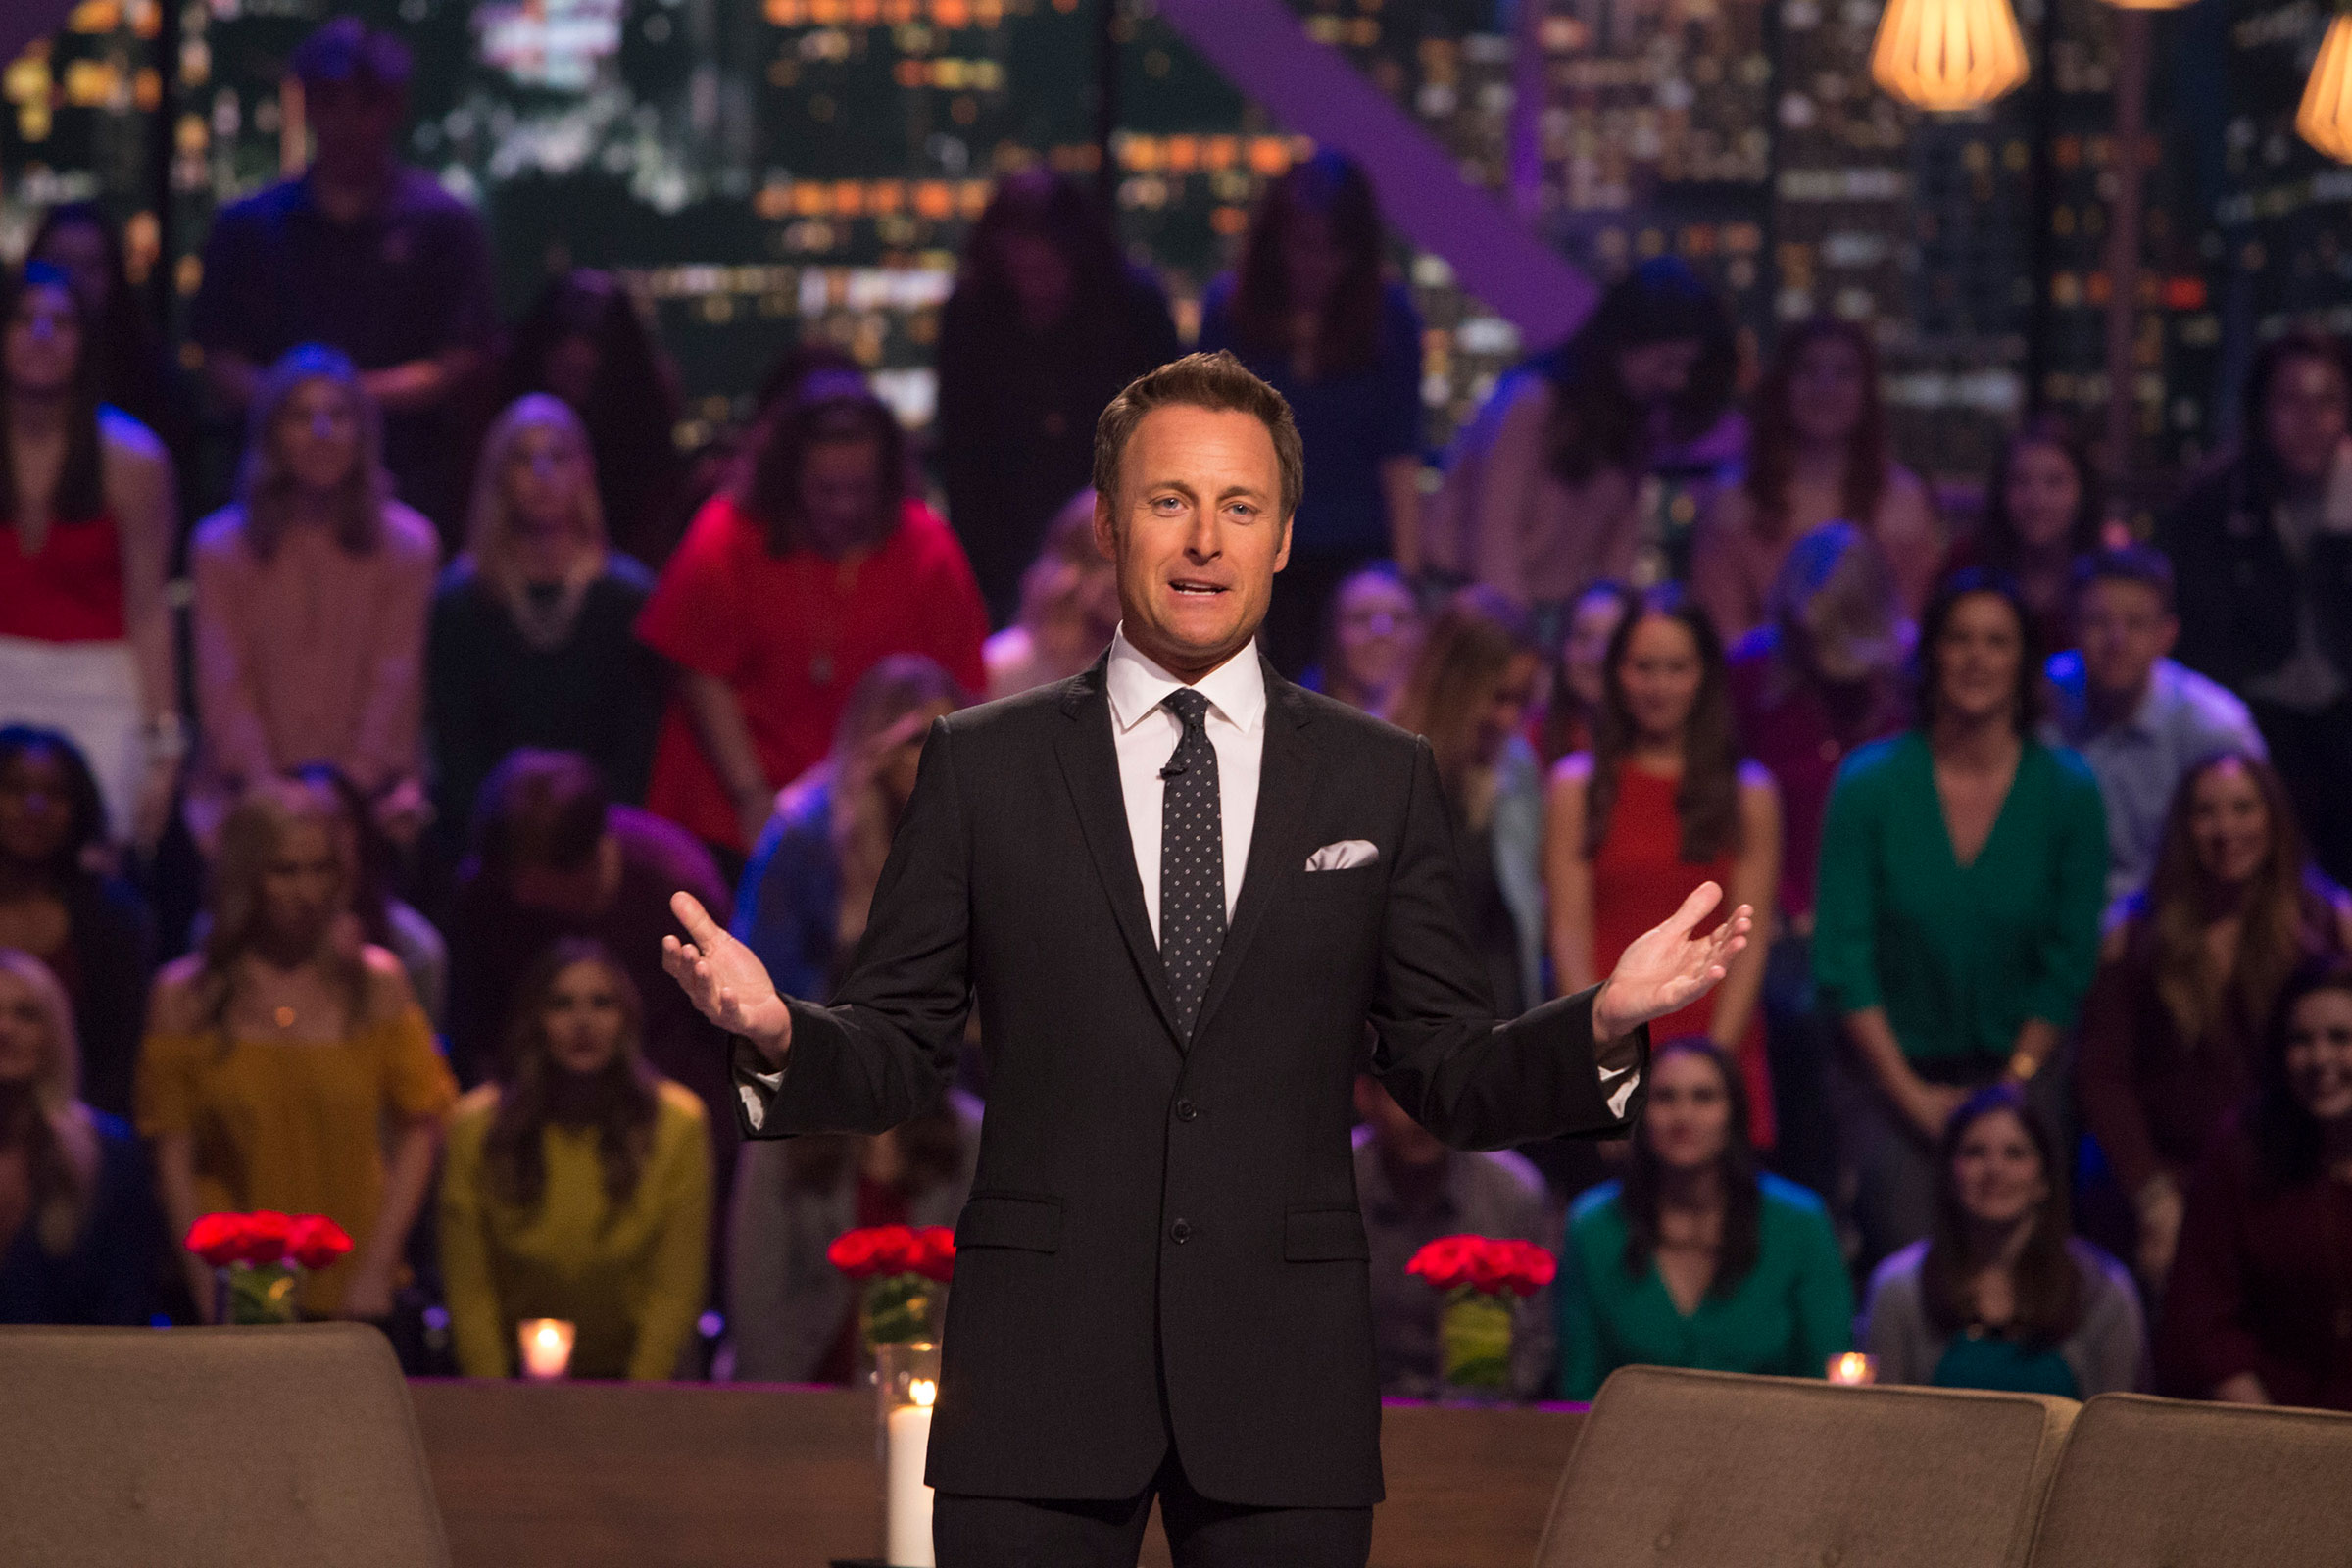 Chris Harrison during the After the Final Rose episode of season 22 of 'The Bachelor' in 2018.